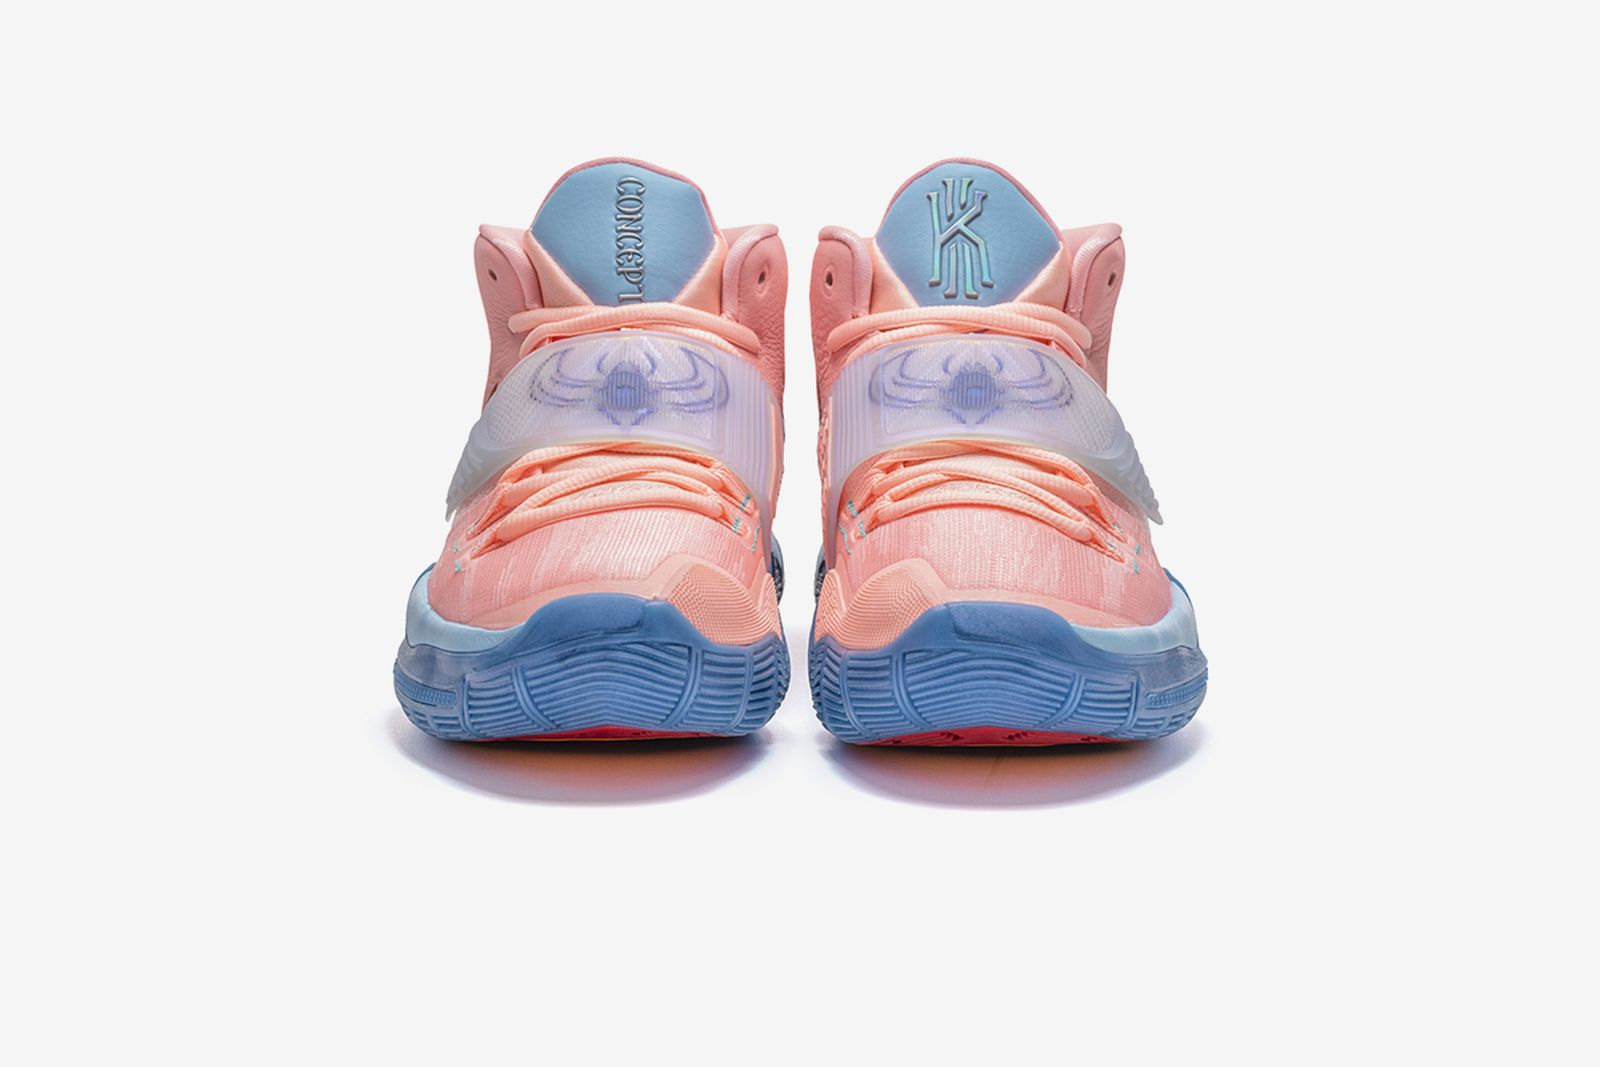 concepts-nike-kyrie-6-release-date-price-23